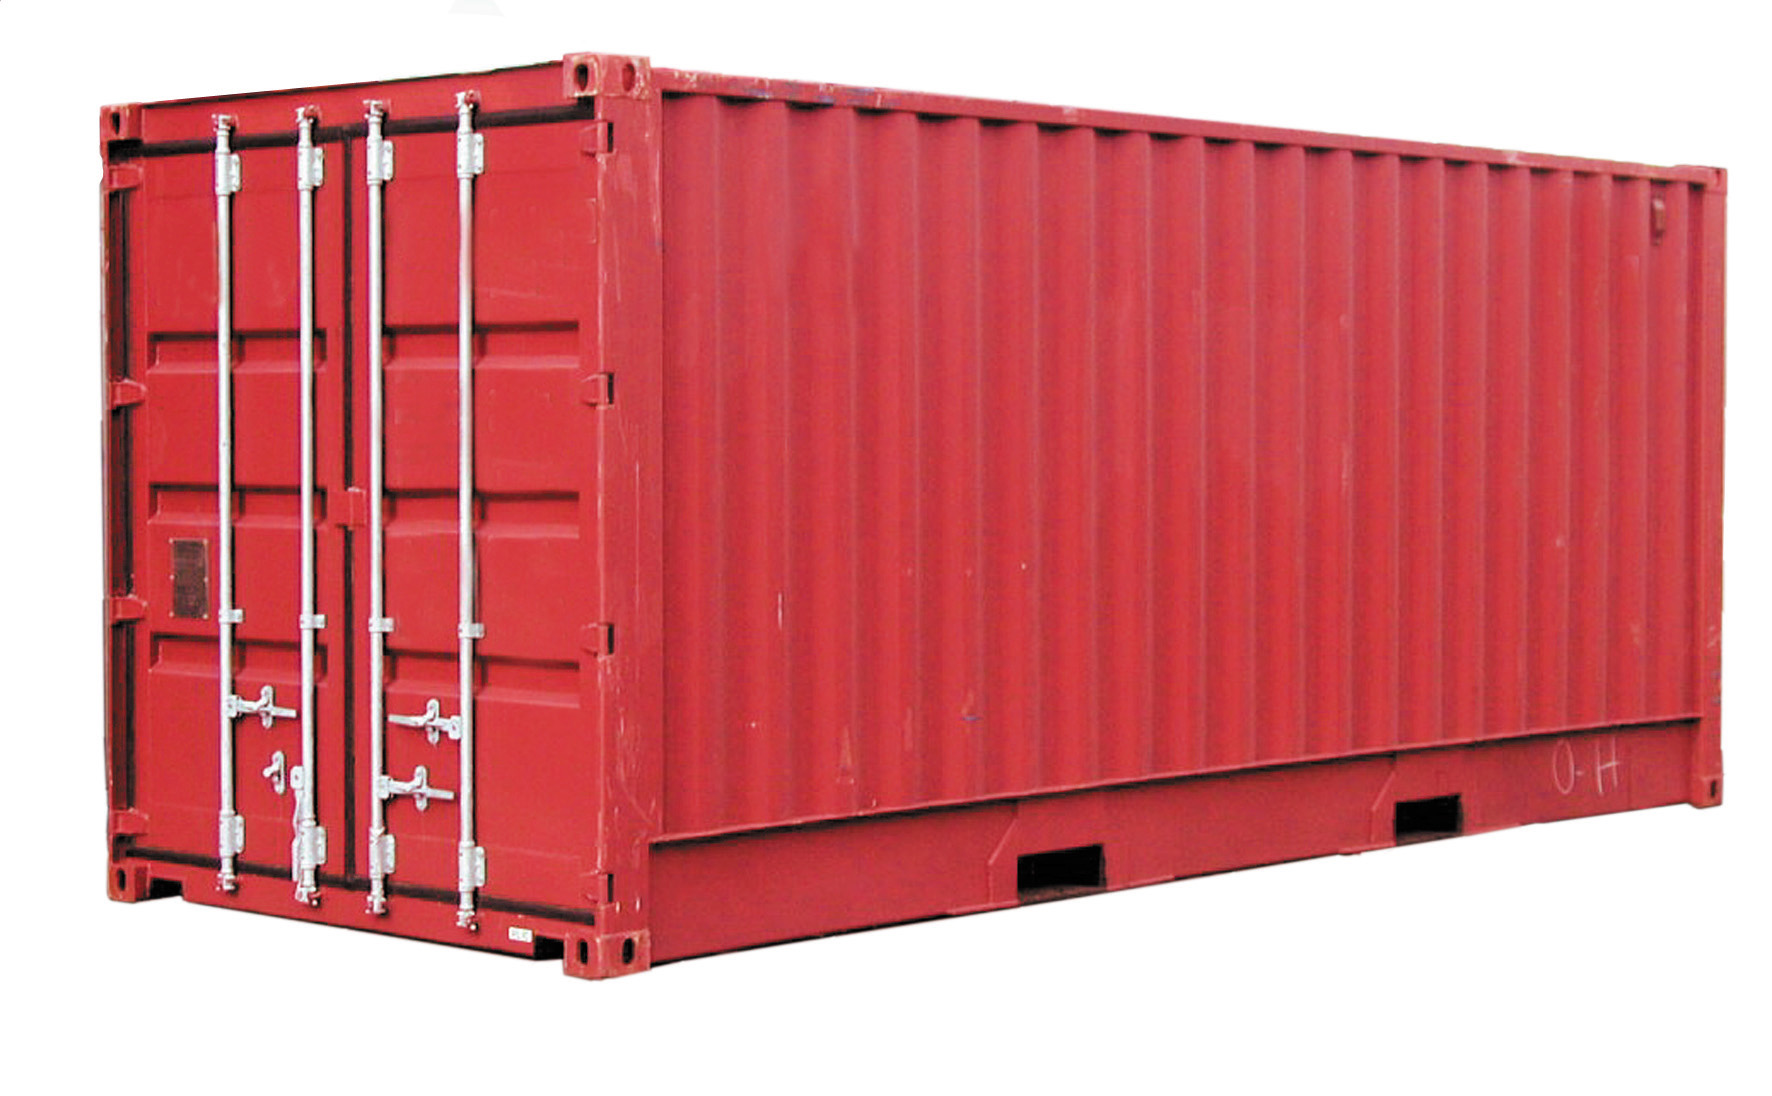 Container   Free Images At Clker Com   Vector Clip Art Online Royalty